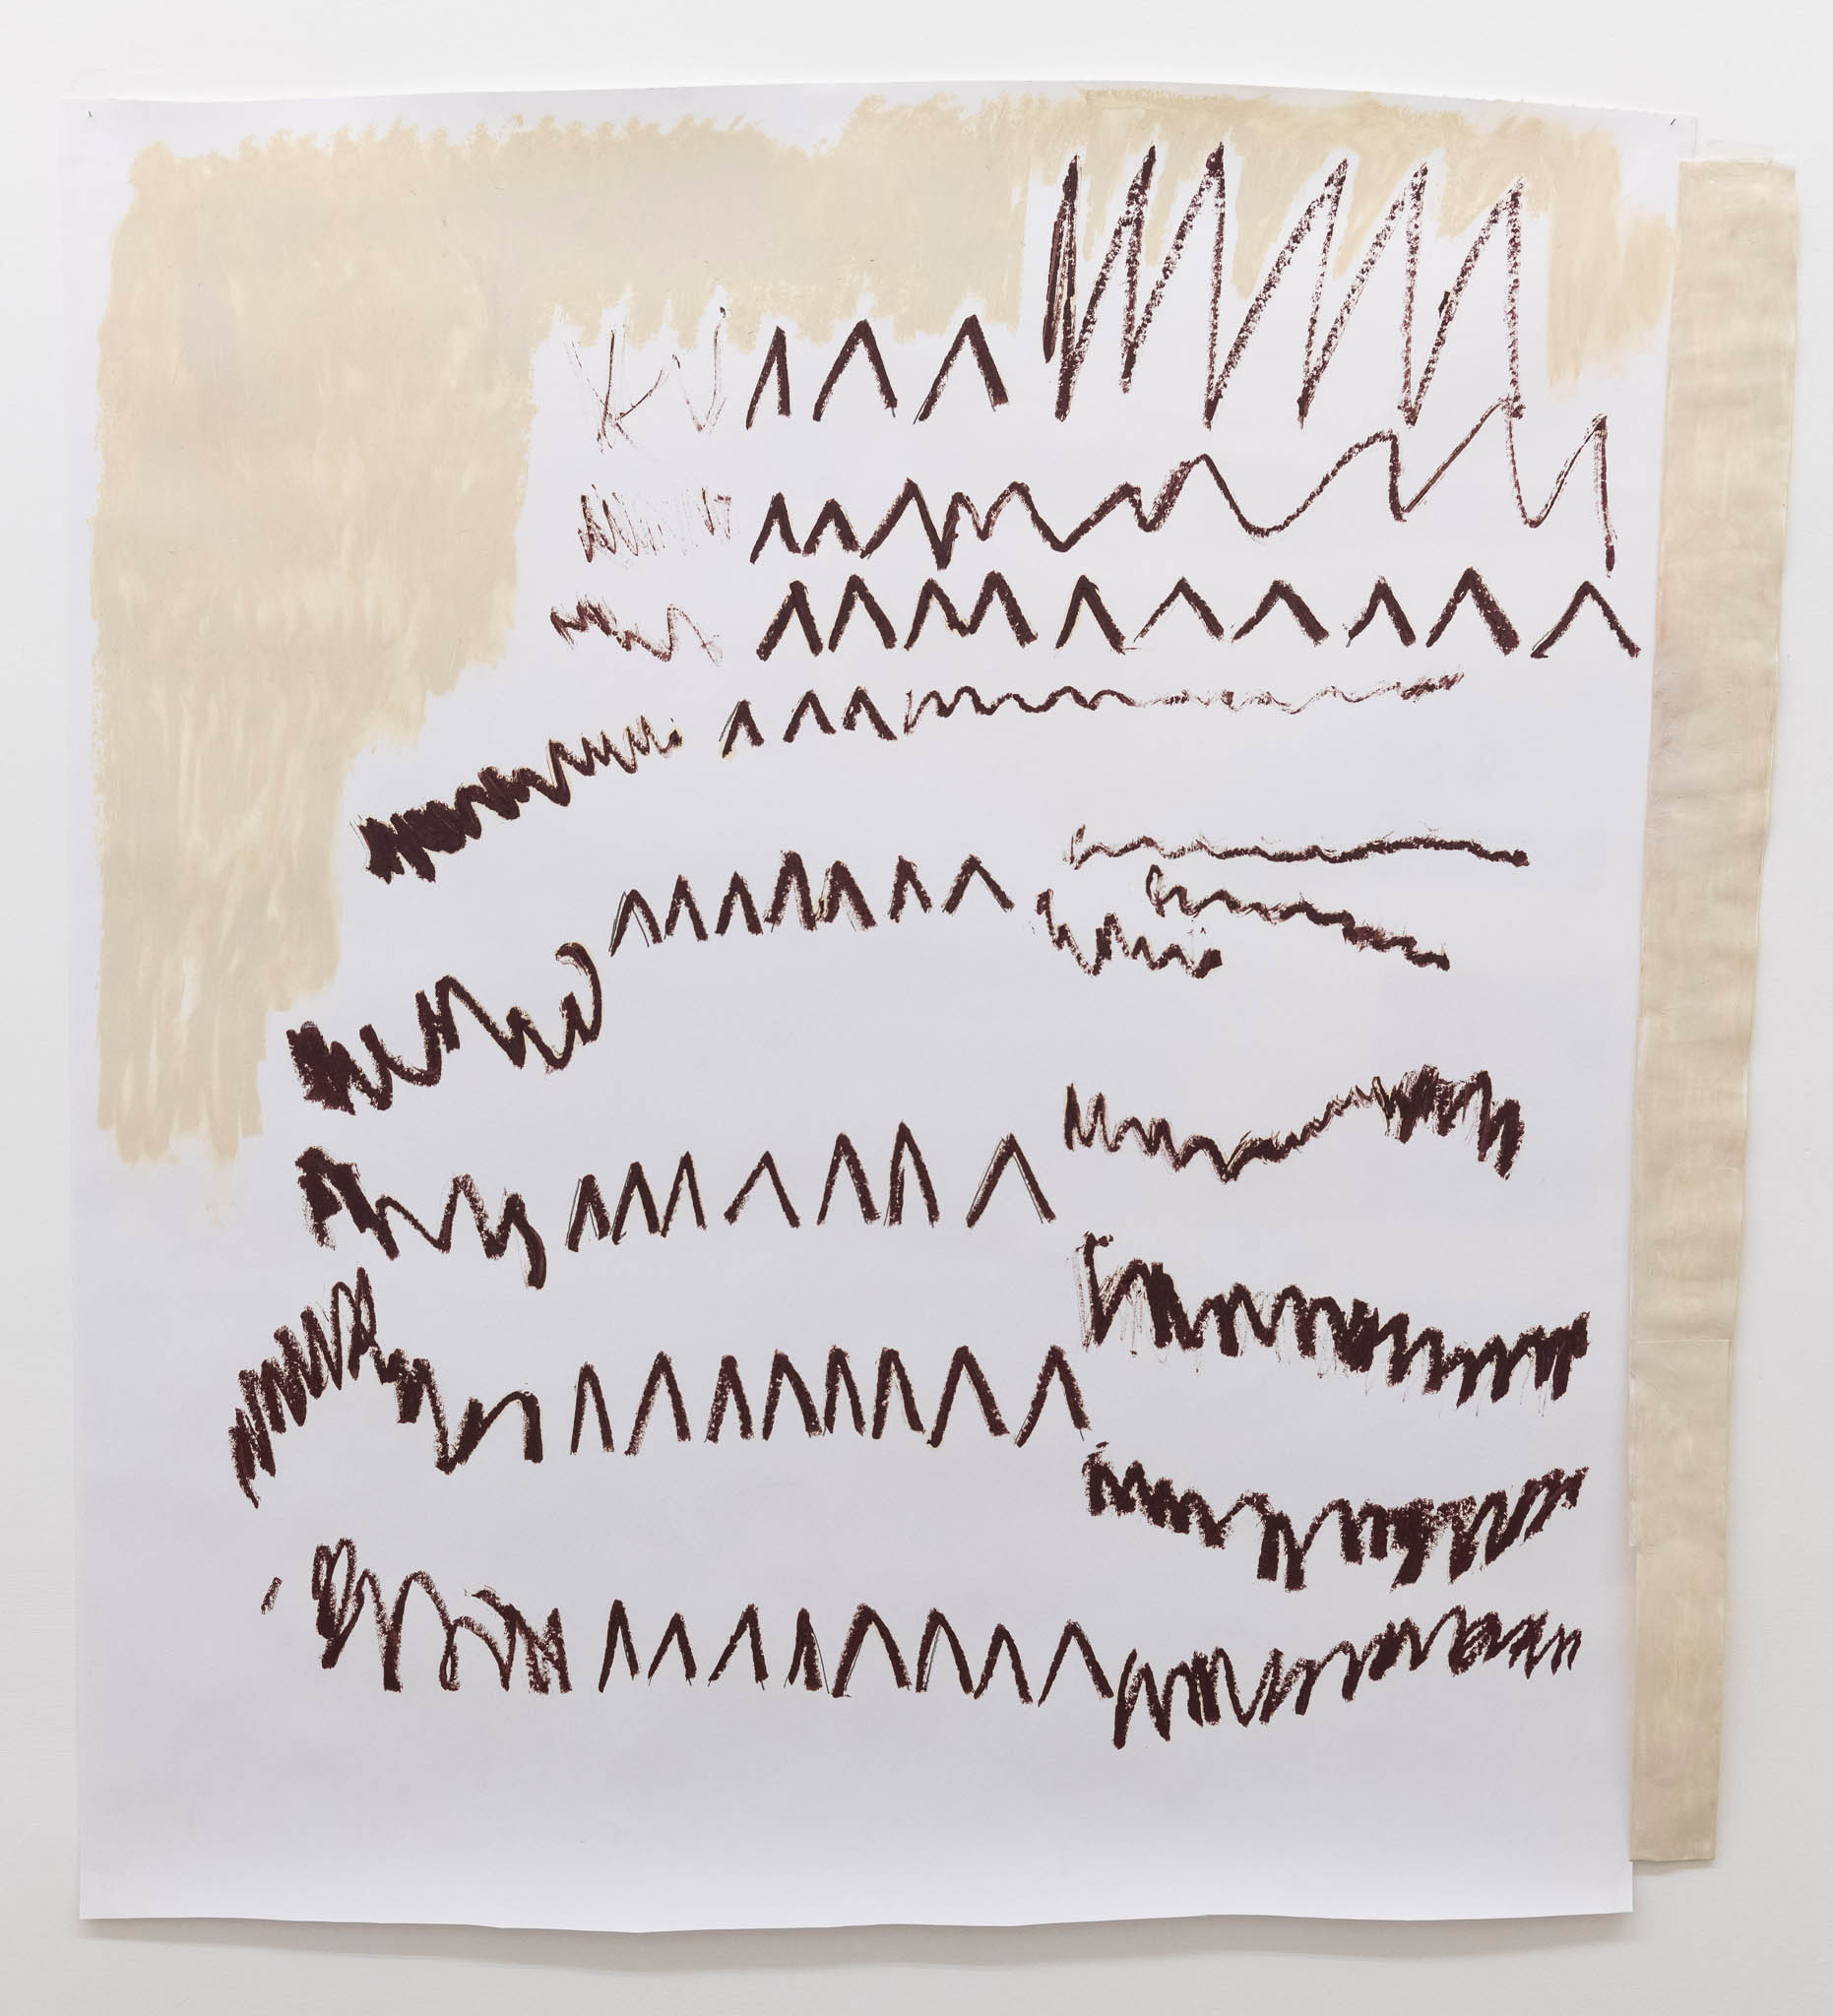 Esther Kläs NY/THERE, 2018, oil stick on paper; Courtesy the artist and Peter Blum Gallery, New York; photo Giorgio Benni